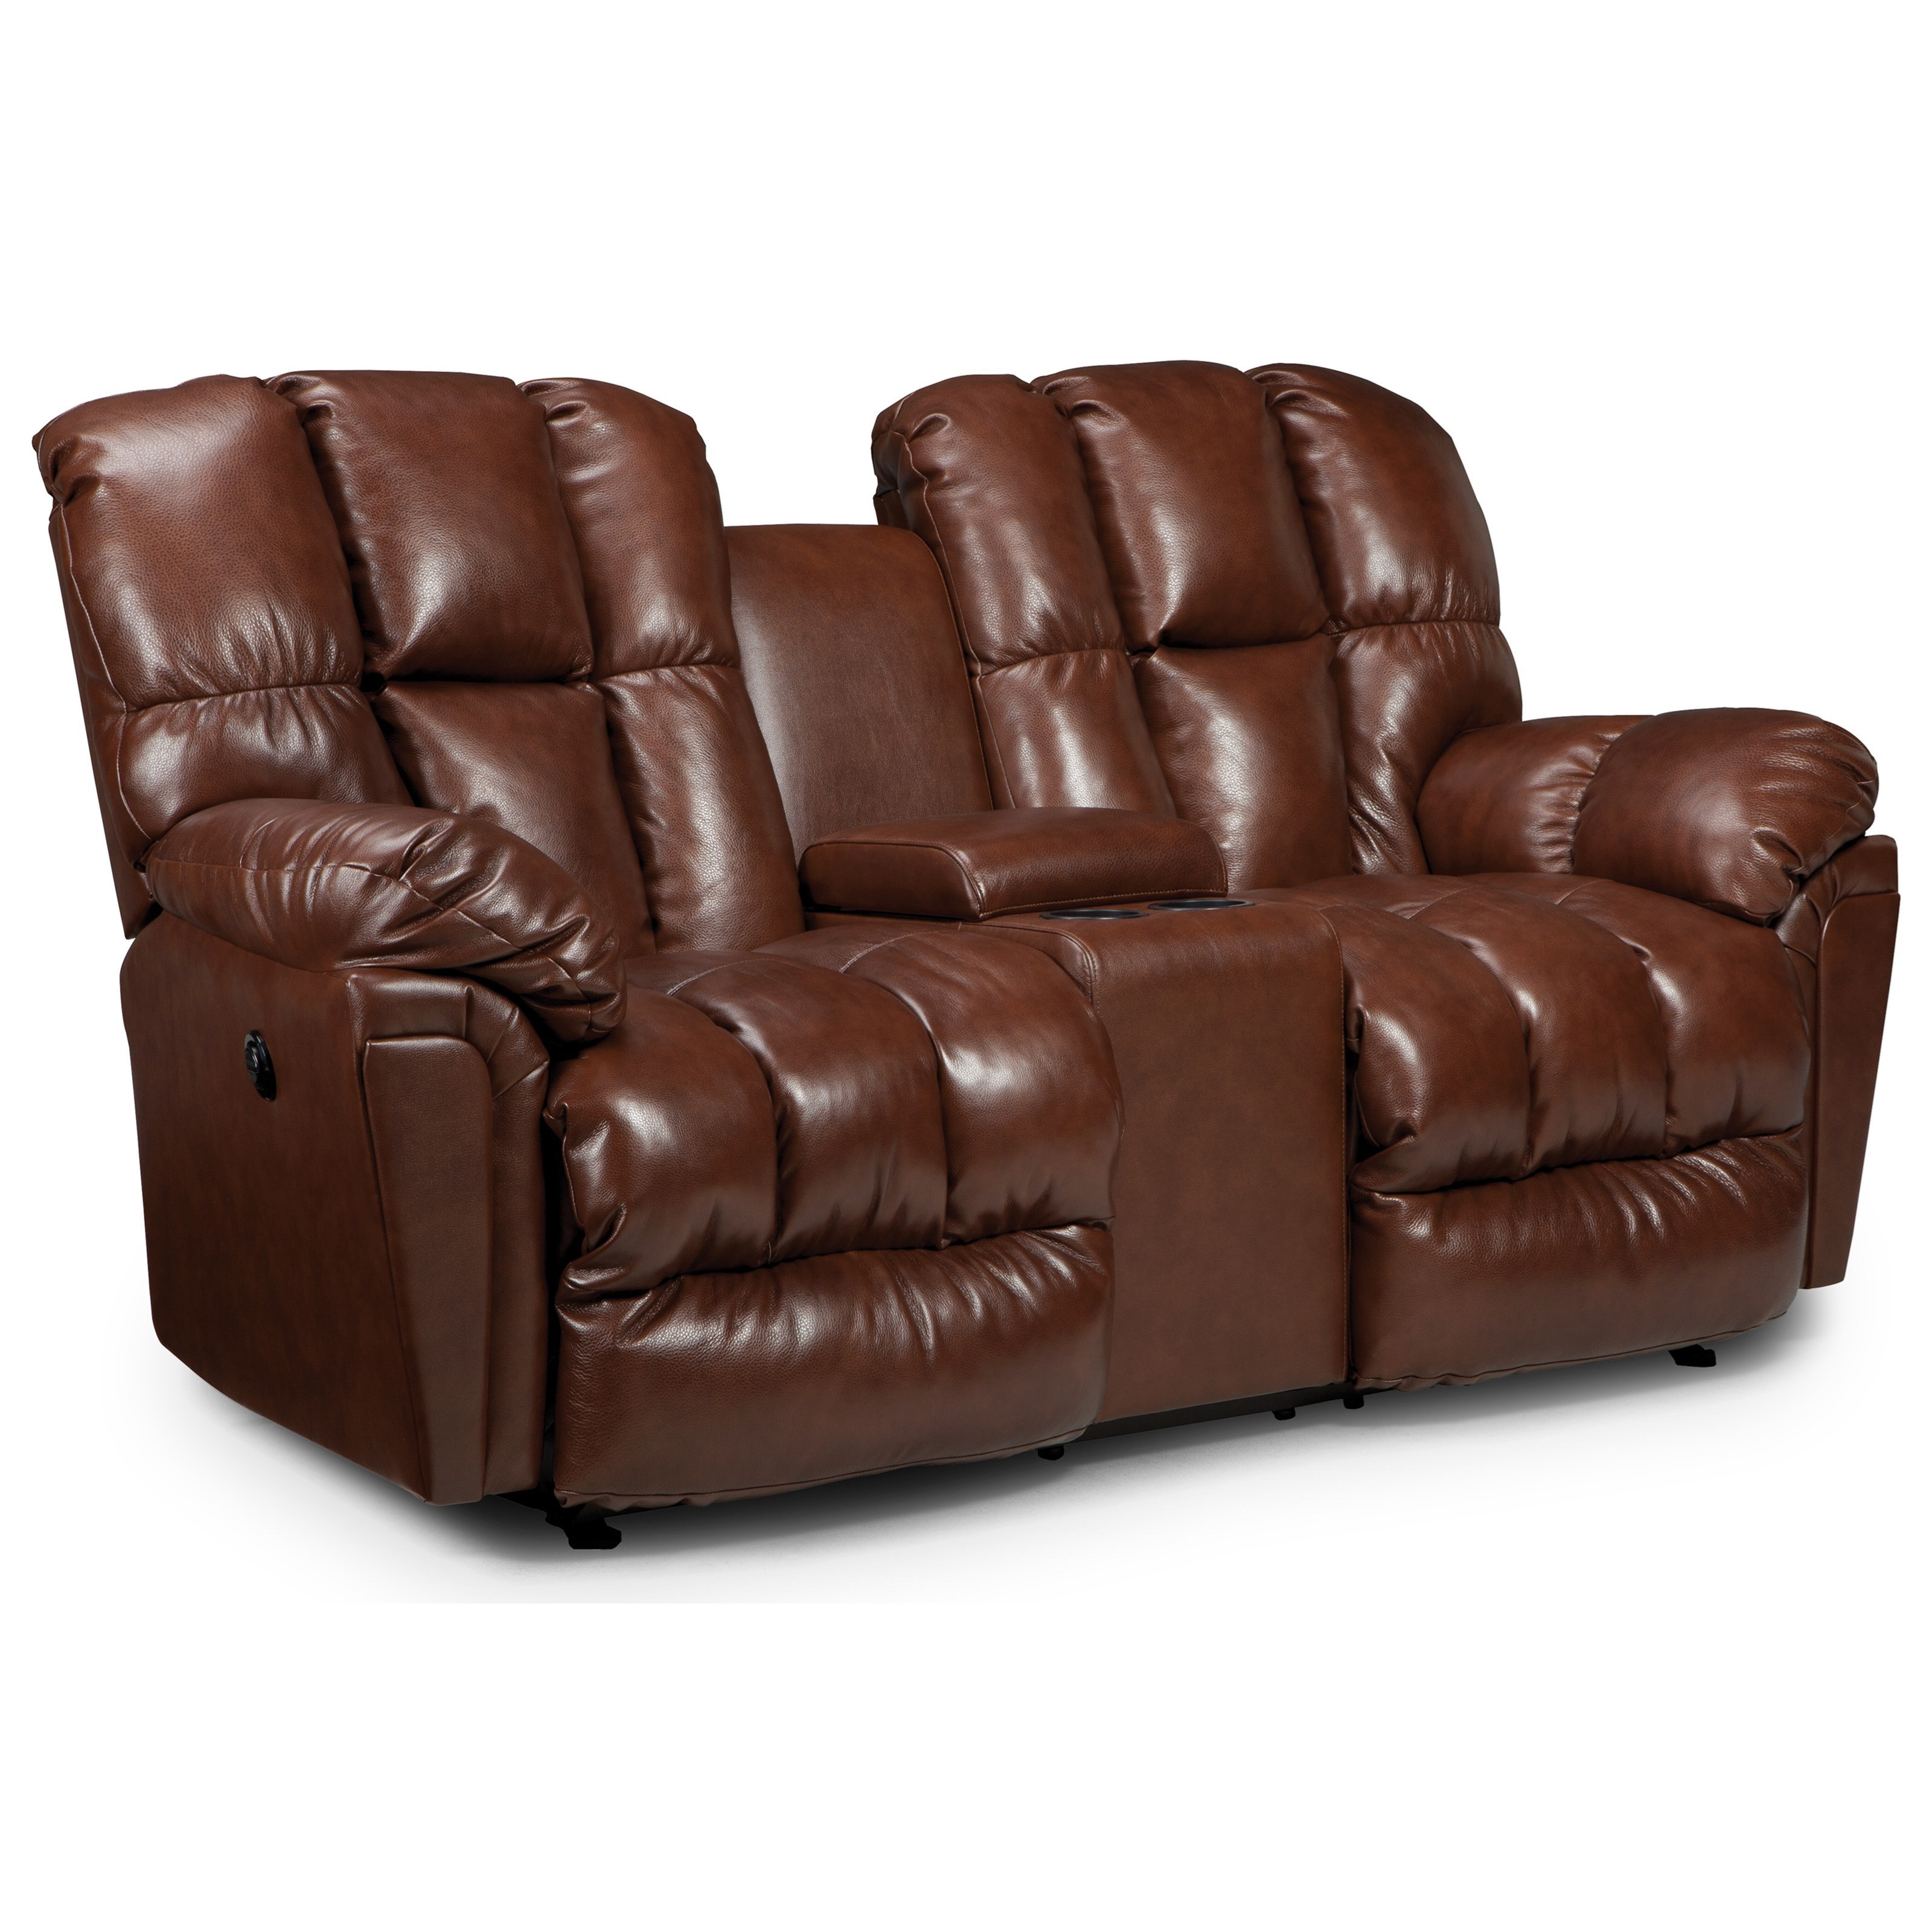 Best Home Furnishings Lucas Space Saver Reclining Loveseat w/ Console - Item Number: L856CC4 01